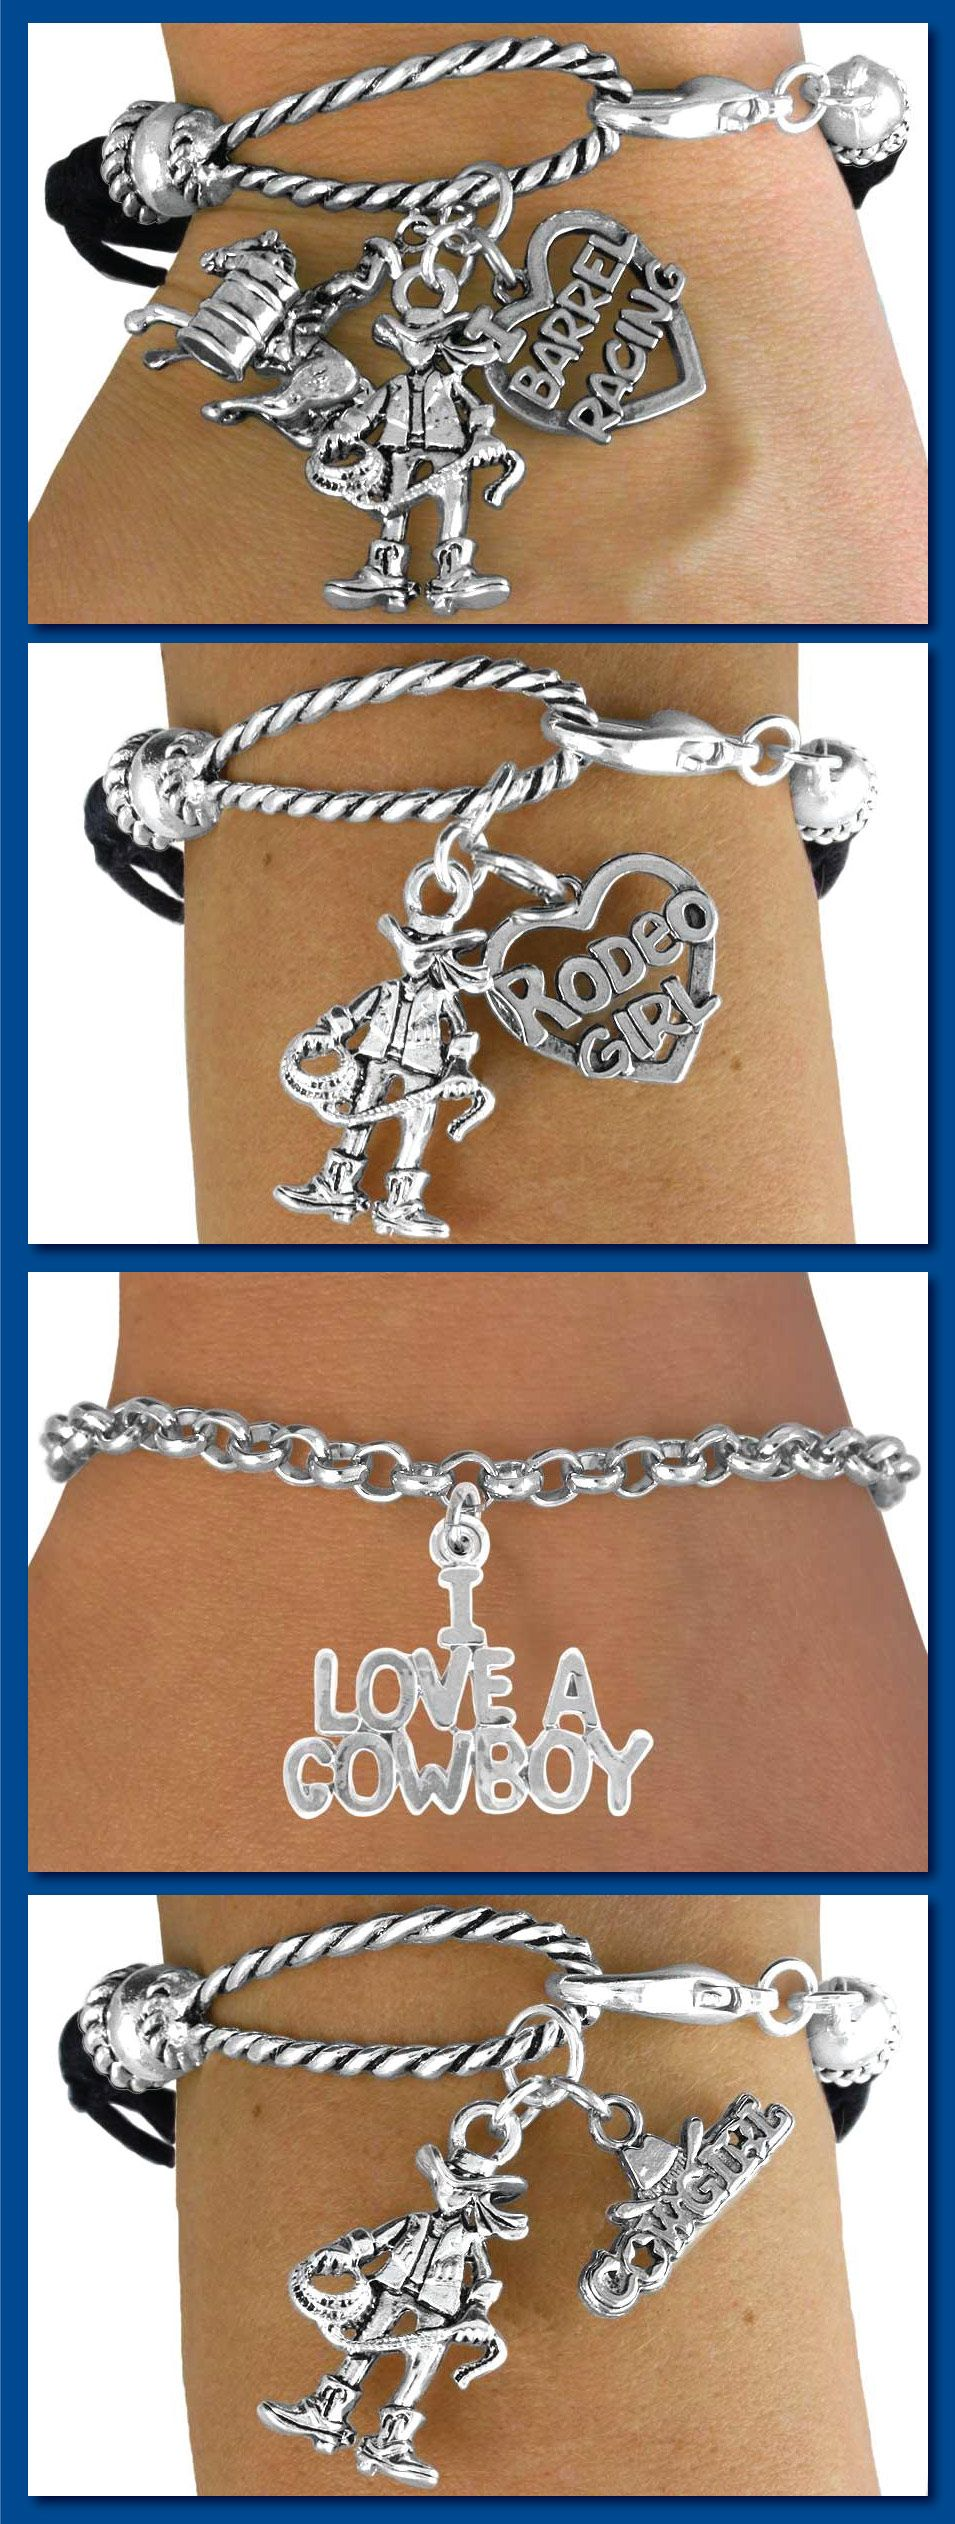 Rodeo Girl Bracelet  Silver And Faux Leather Rope Bracelet